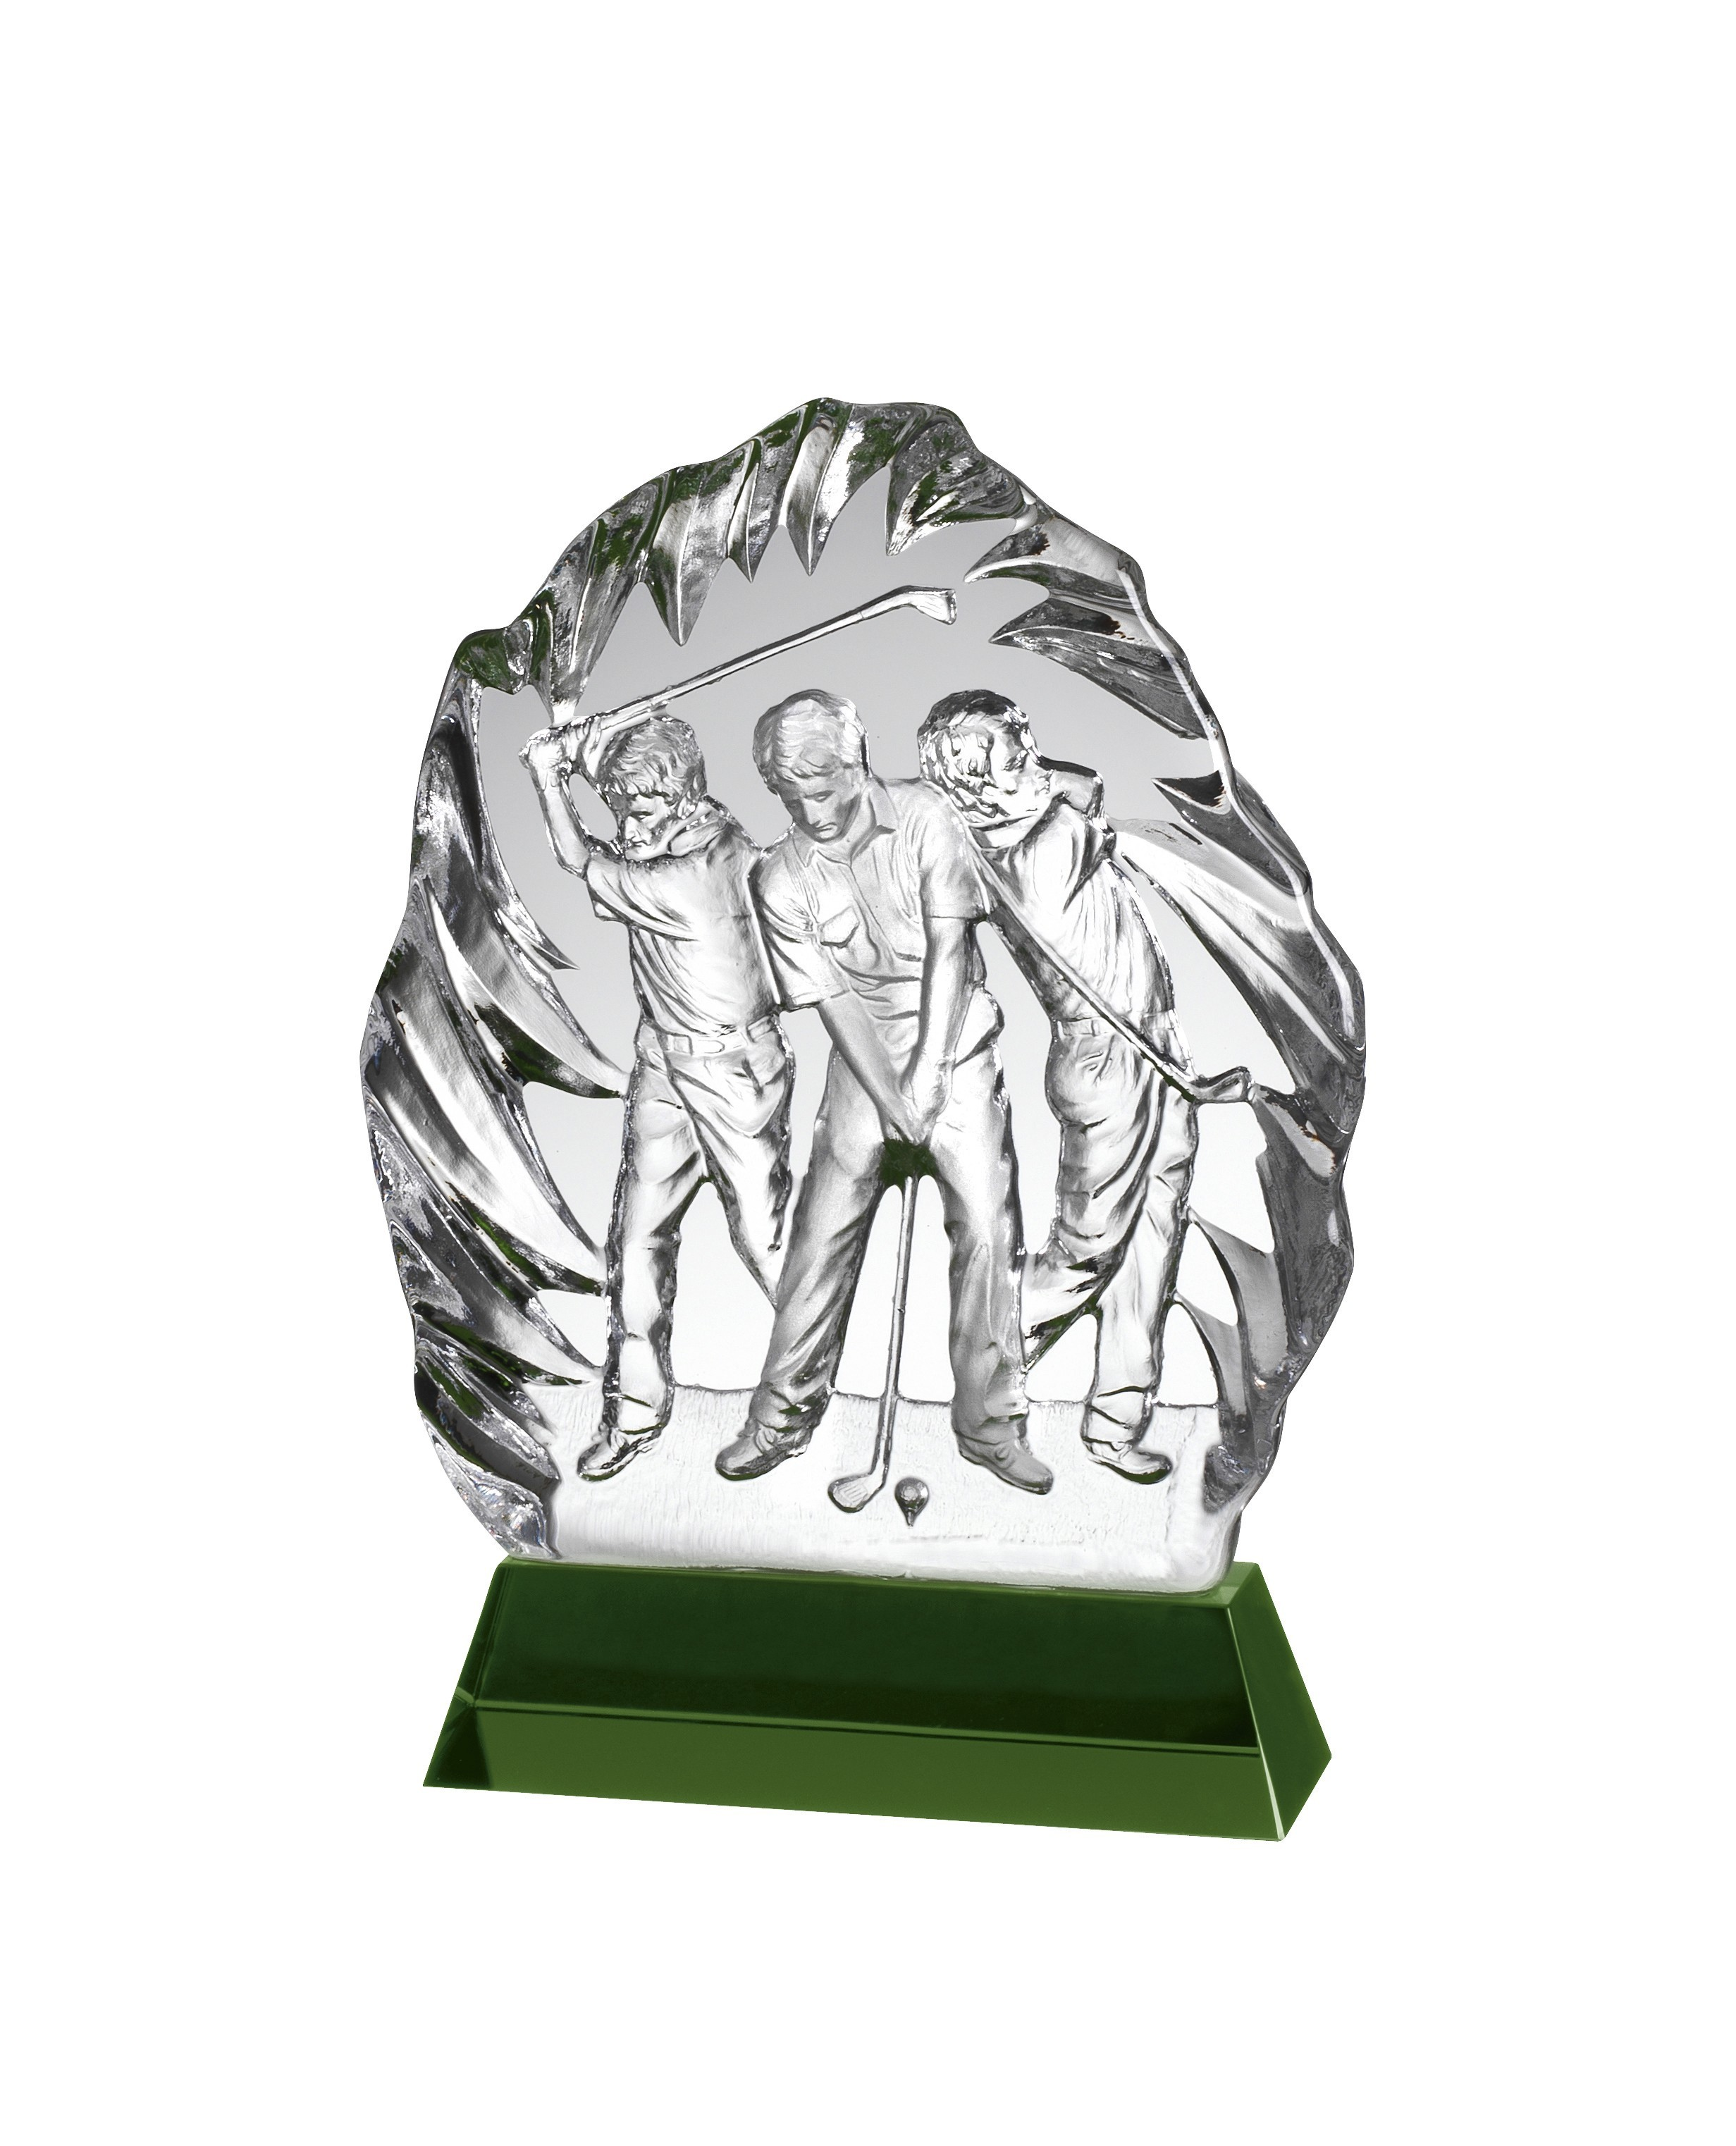 13.5cm Clear and Green Crystal Golf Award in Box